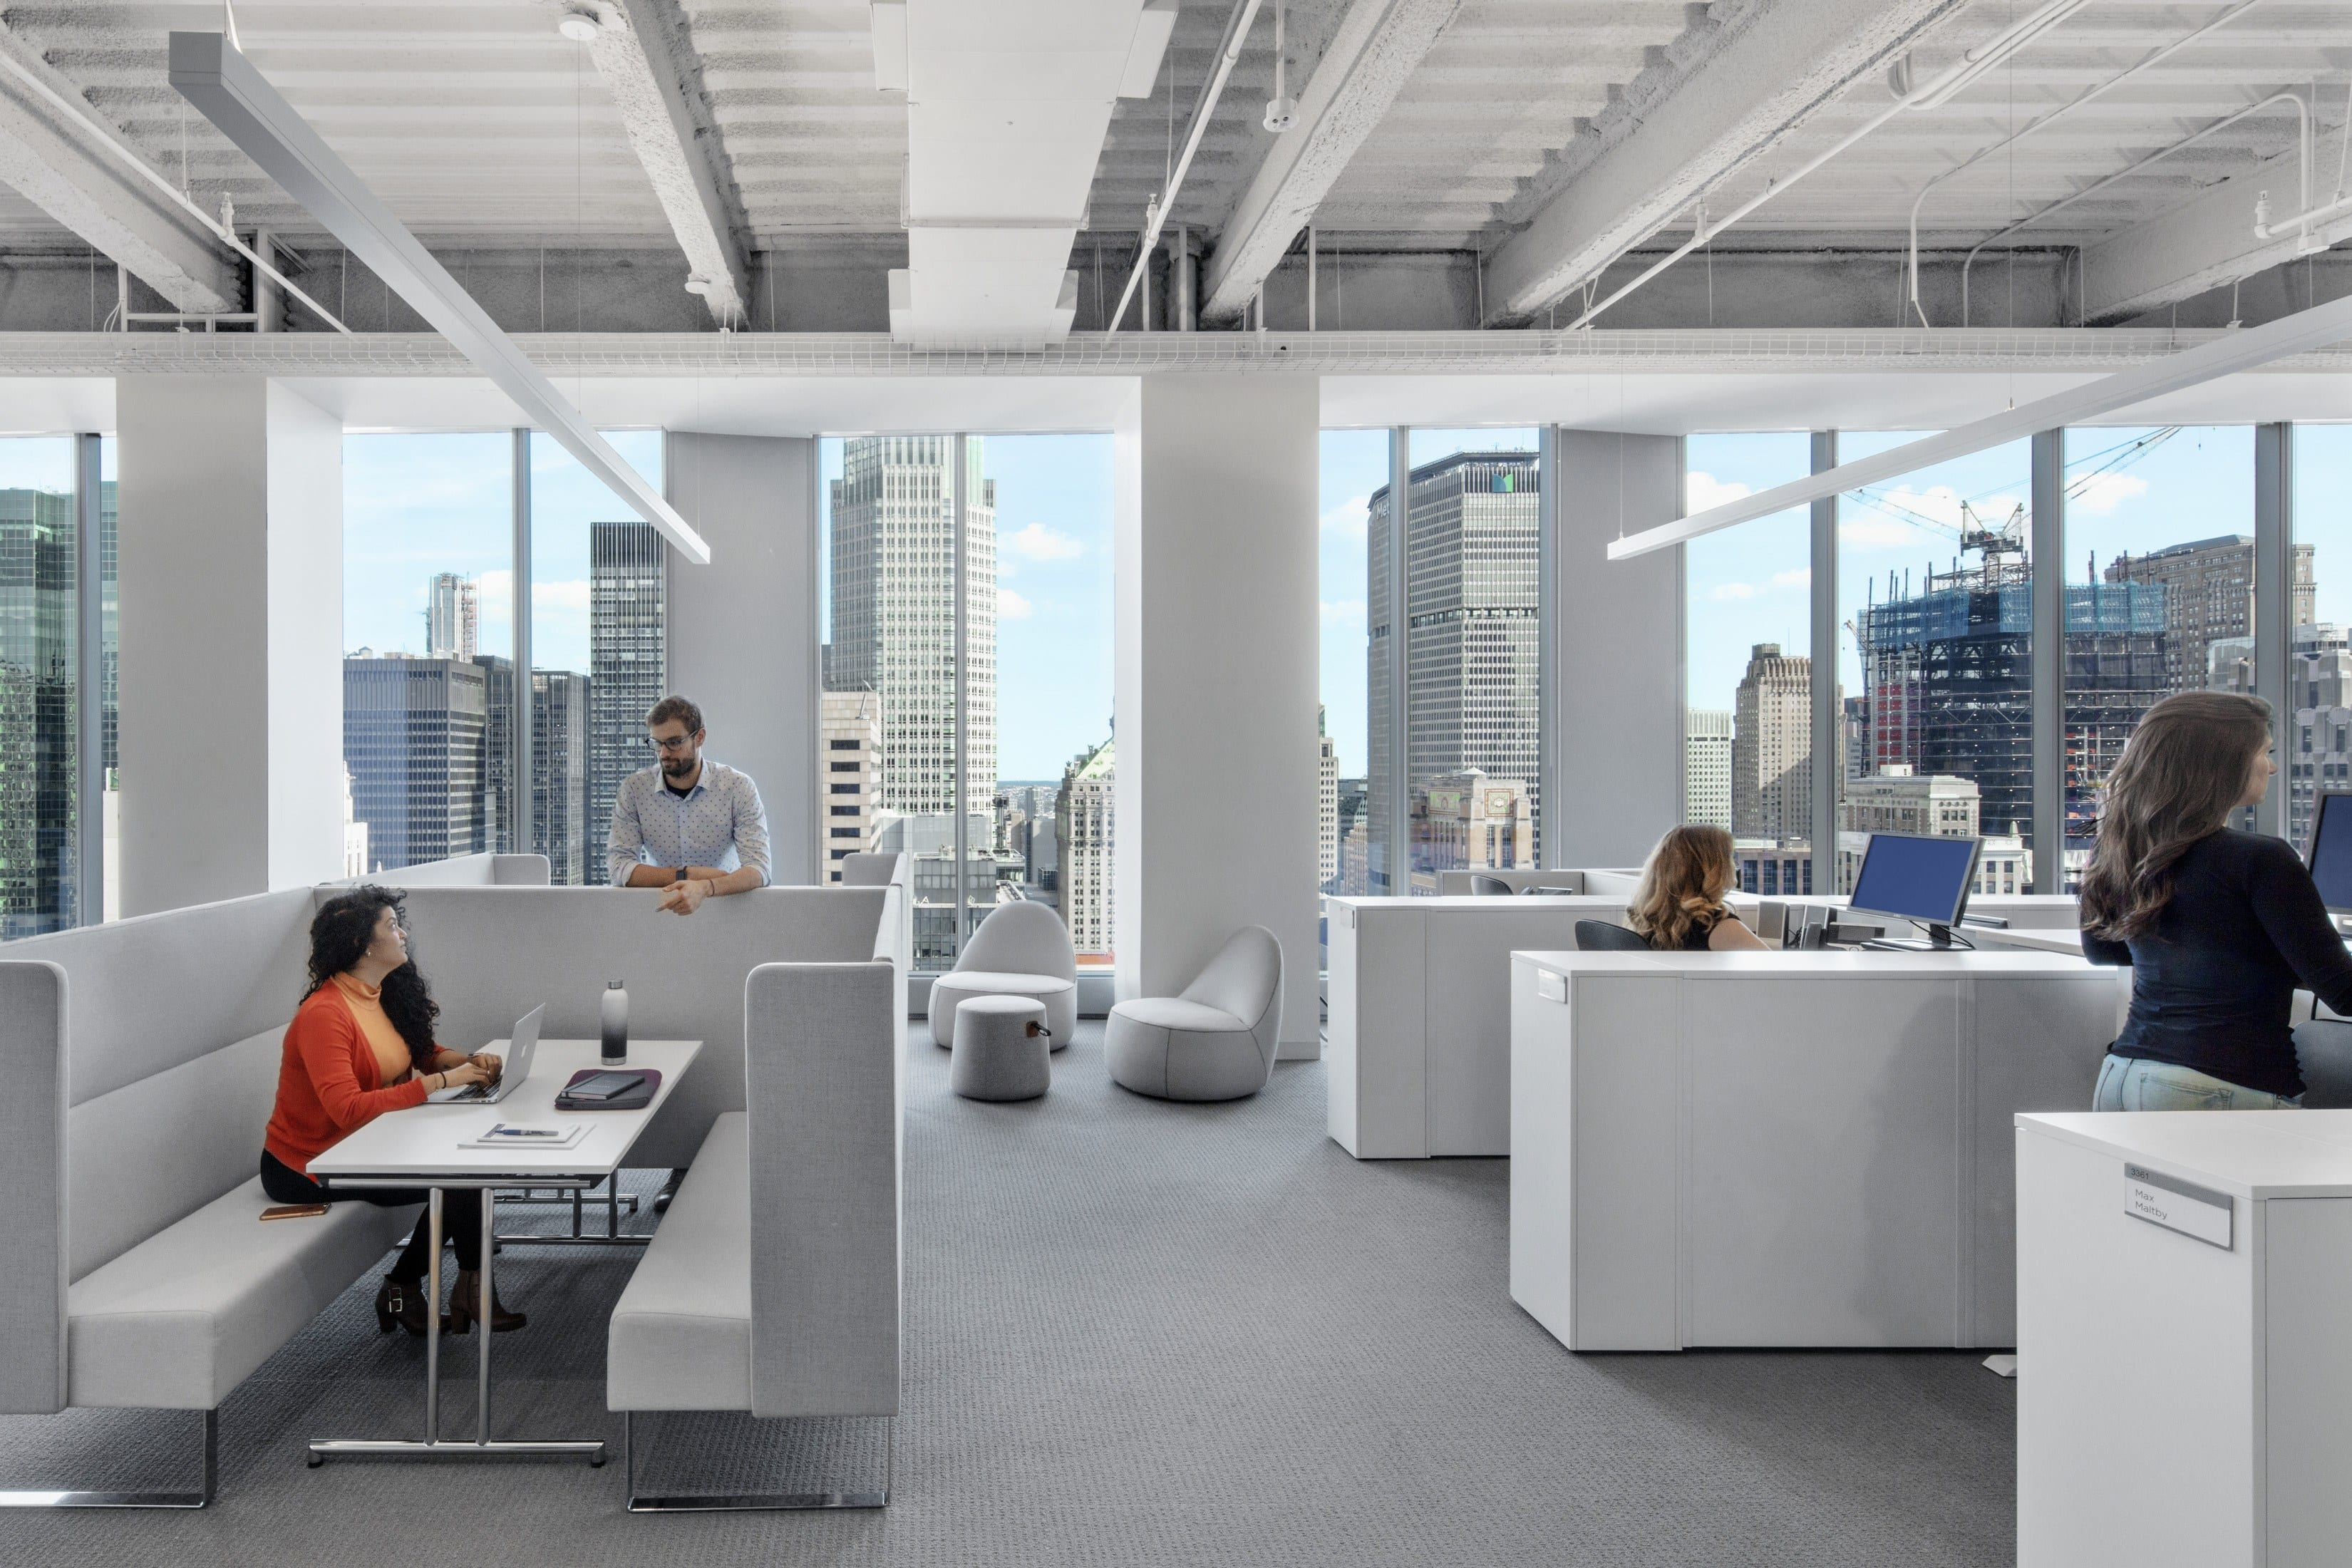 The group work space features full-length windows